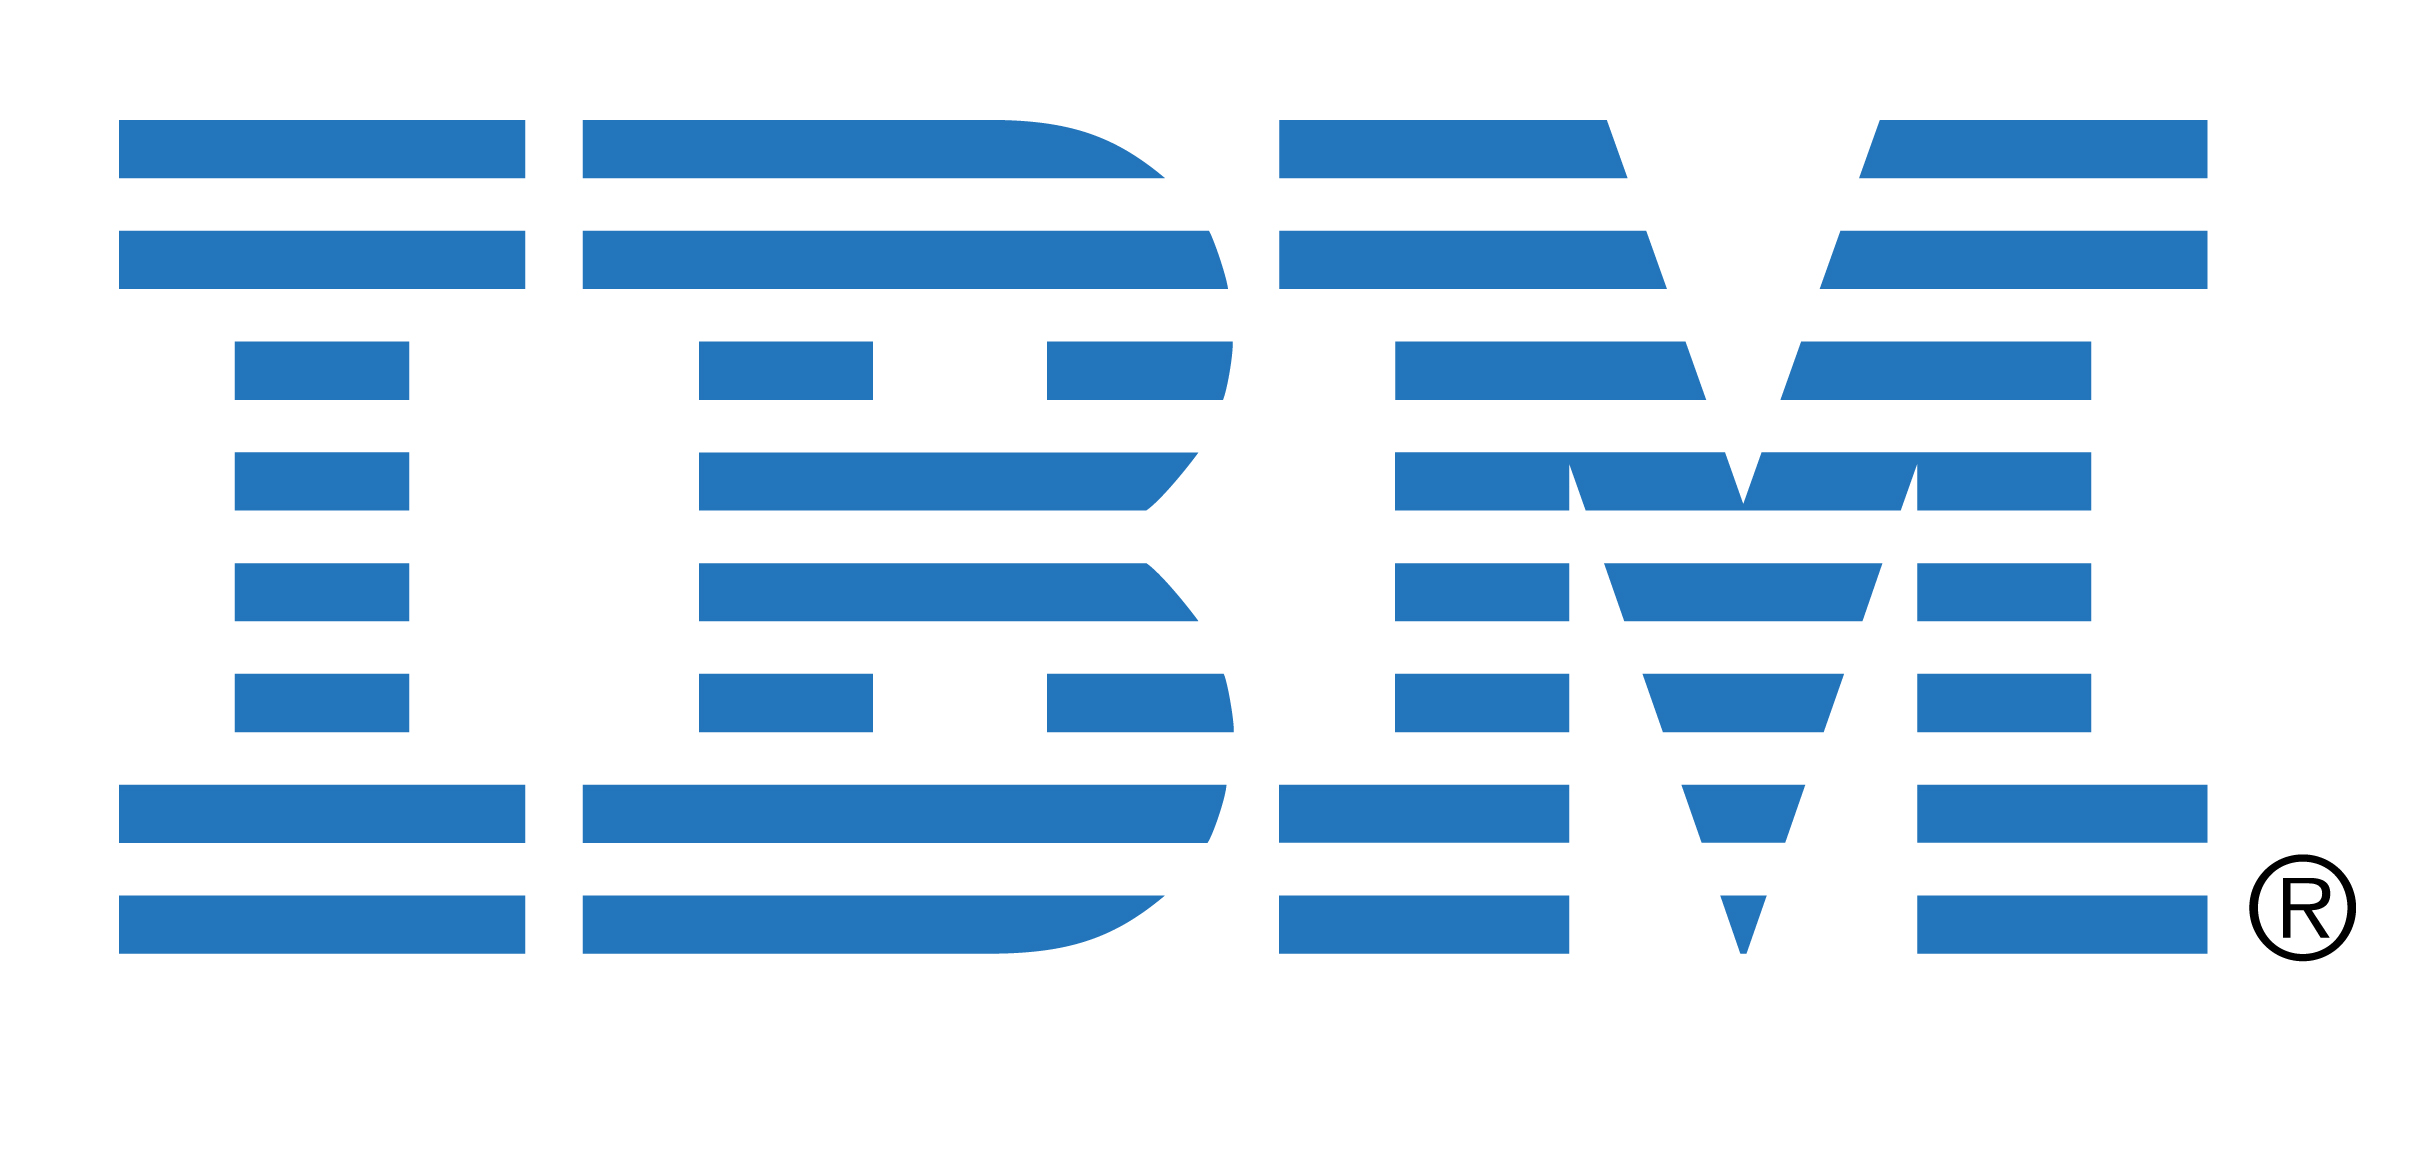 IBM Logo Wallpaper